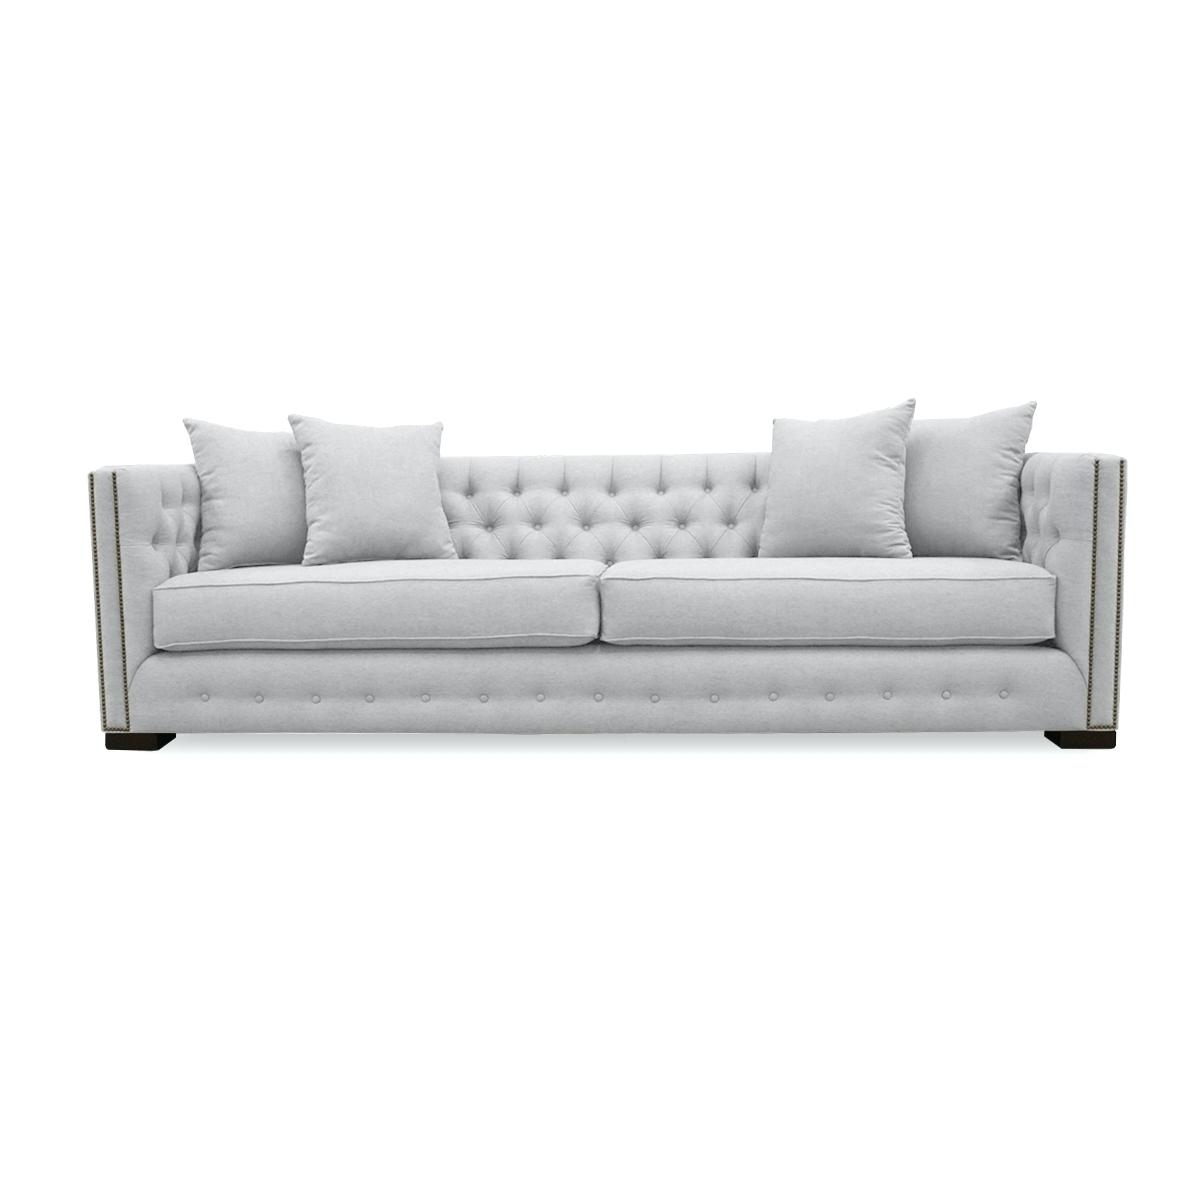 Widely Used Salt Lake City Sectional Sofas With Regard To Sofa : Grey Tufted Sofa Charcoal Gray Nailhead Light Salt Lake (View 2 of 15)